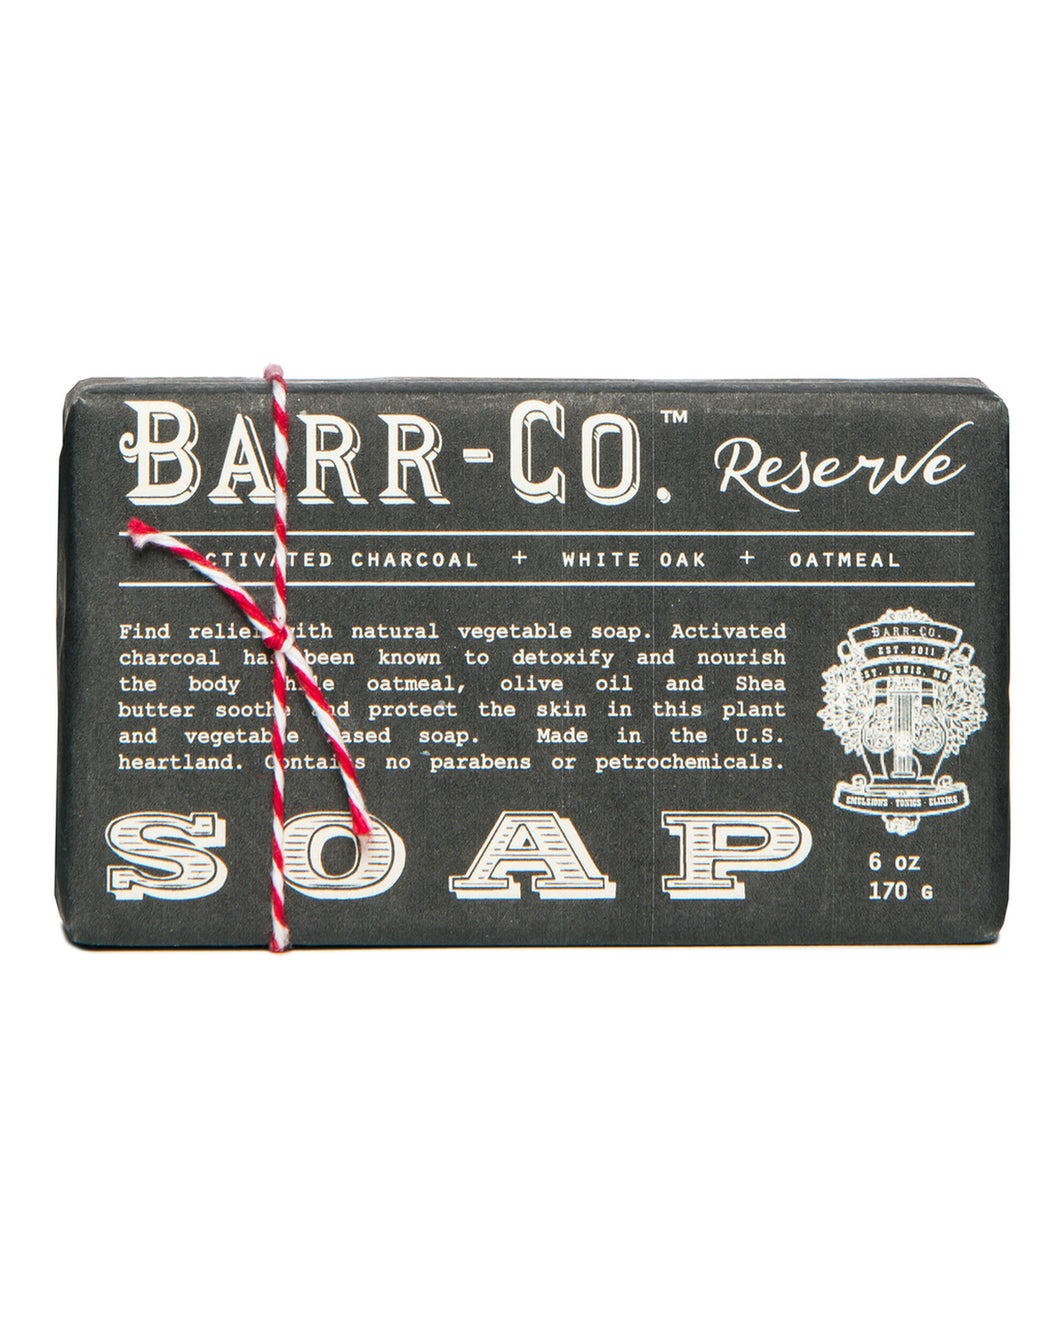 Barr-Co. RESERVE Bar Soap - Indie Indie Bang! Bang!